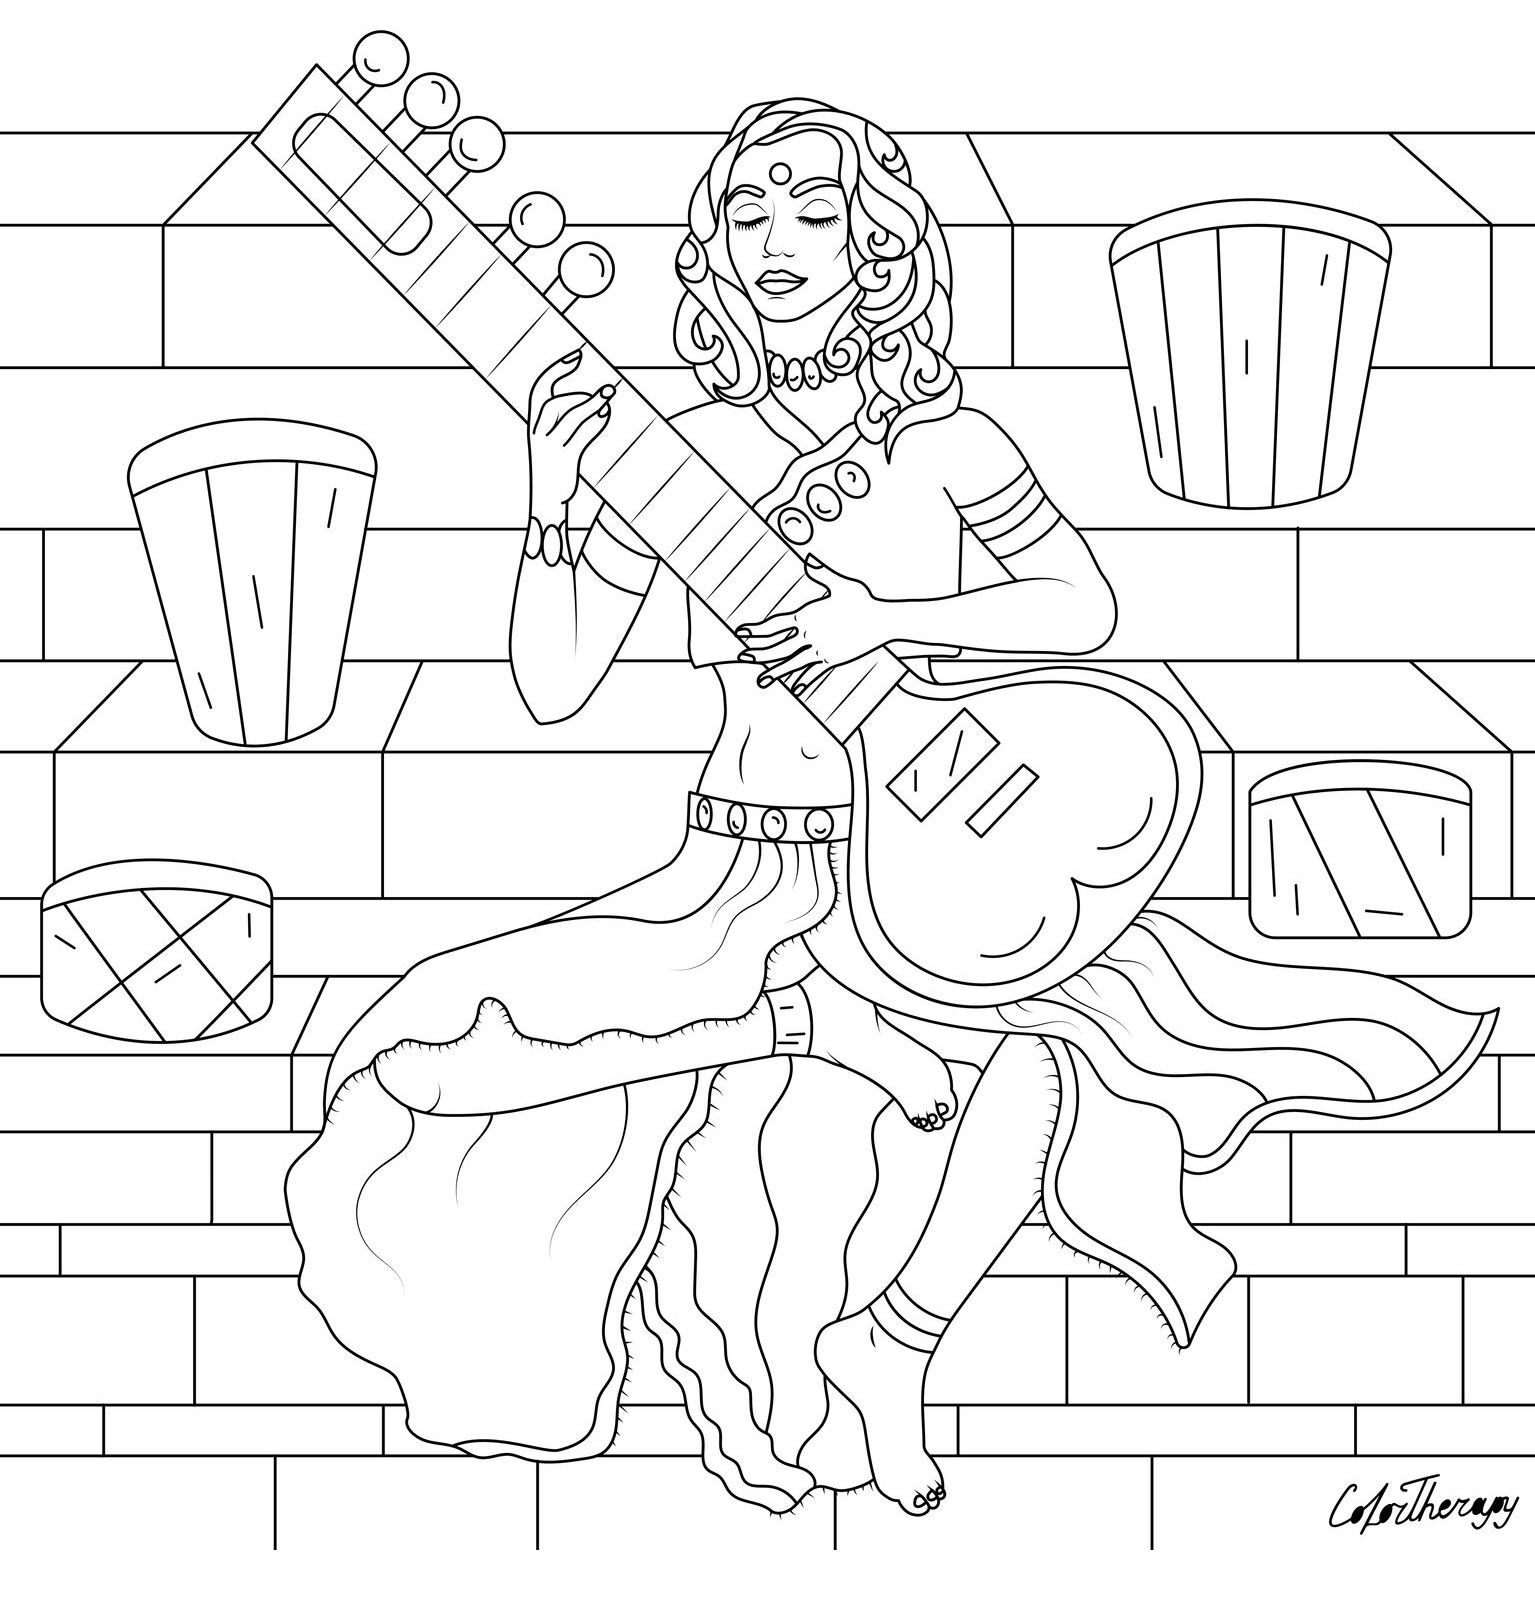 Pin on Color Therapy Coloring Pages